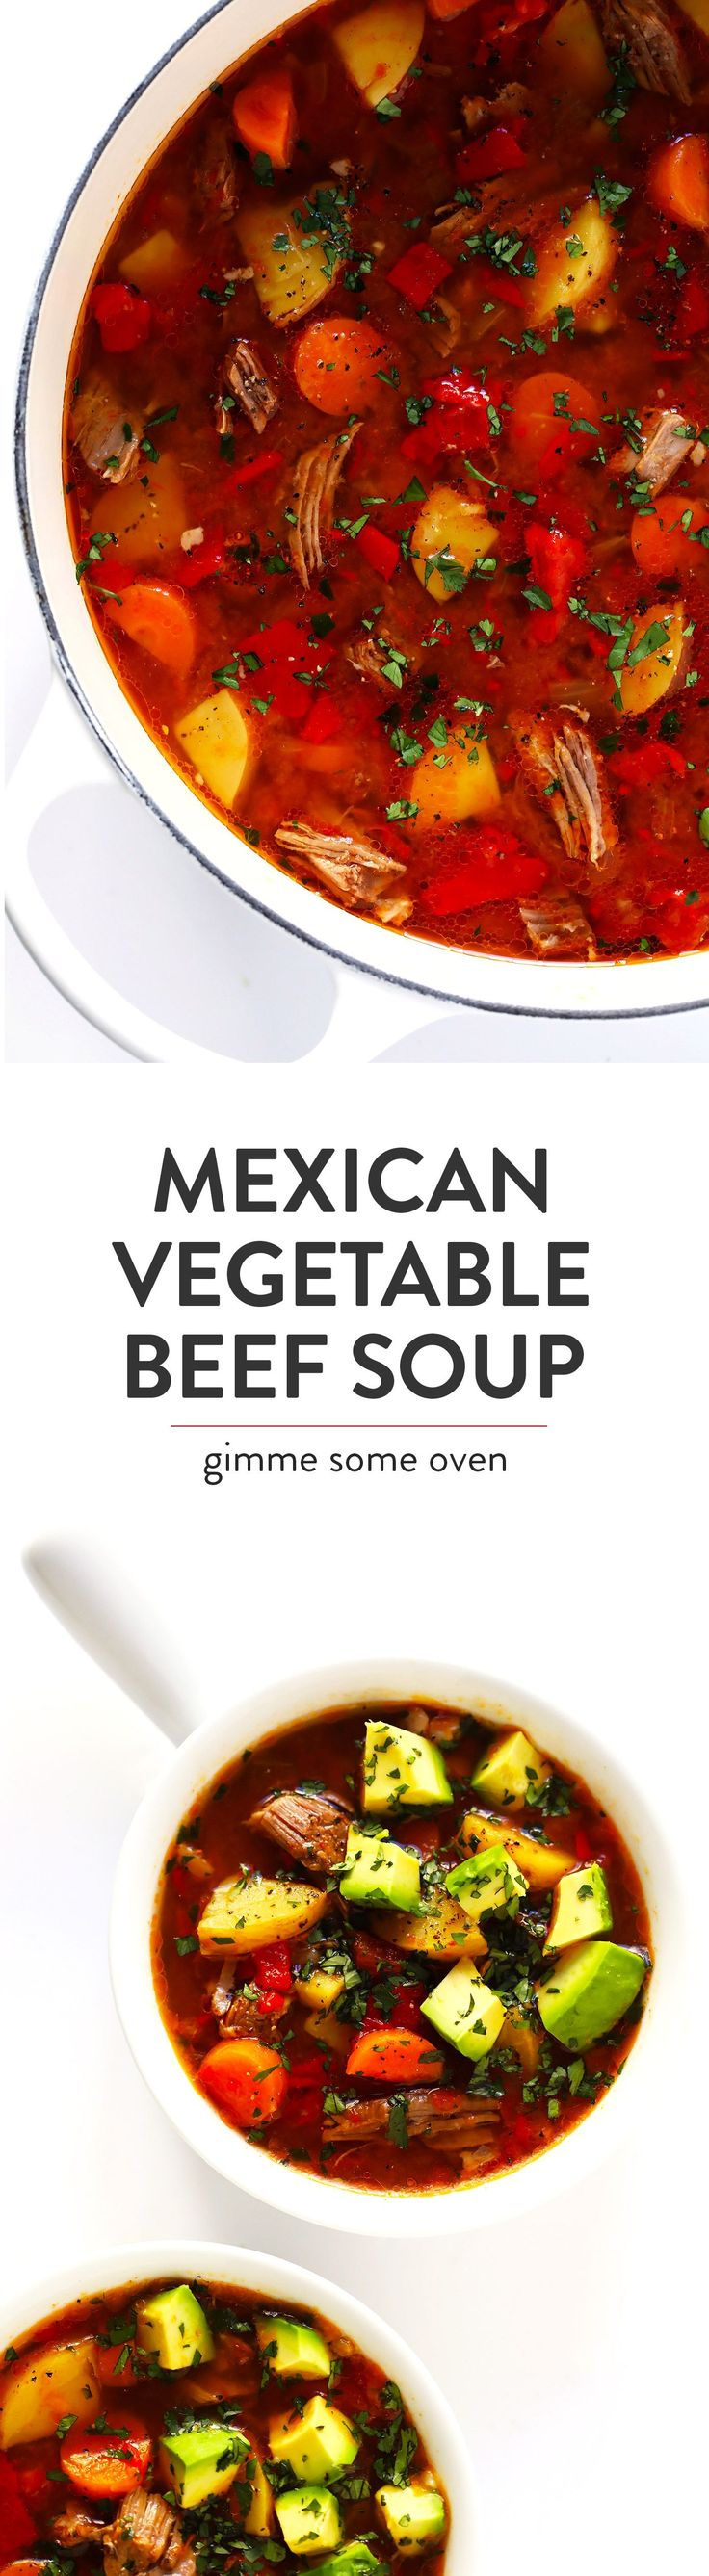 Just added celery!! Love it!!LOVE this Mexican Vegetable Beef Soup recipe! It's easy to make in the Instant Pot (pressure cooker), Crock-Pot (slow cooker), or on the stovetop. And it's full of tender steak, potatoes, carrots, roasted red peppers, tomatoes, and simmered in a delicious tomato chile broth. High recommend topping this stew with lots of fresh cilantro and avocado! #instantpot #soup #stew #pressurecooker #crockpot #slowcooker #comfortfood #beef #steak